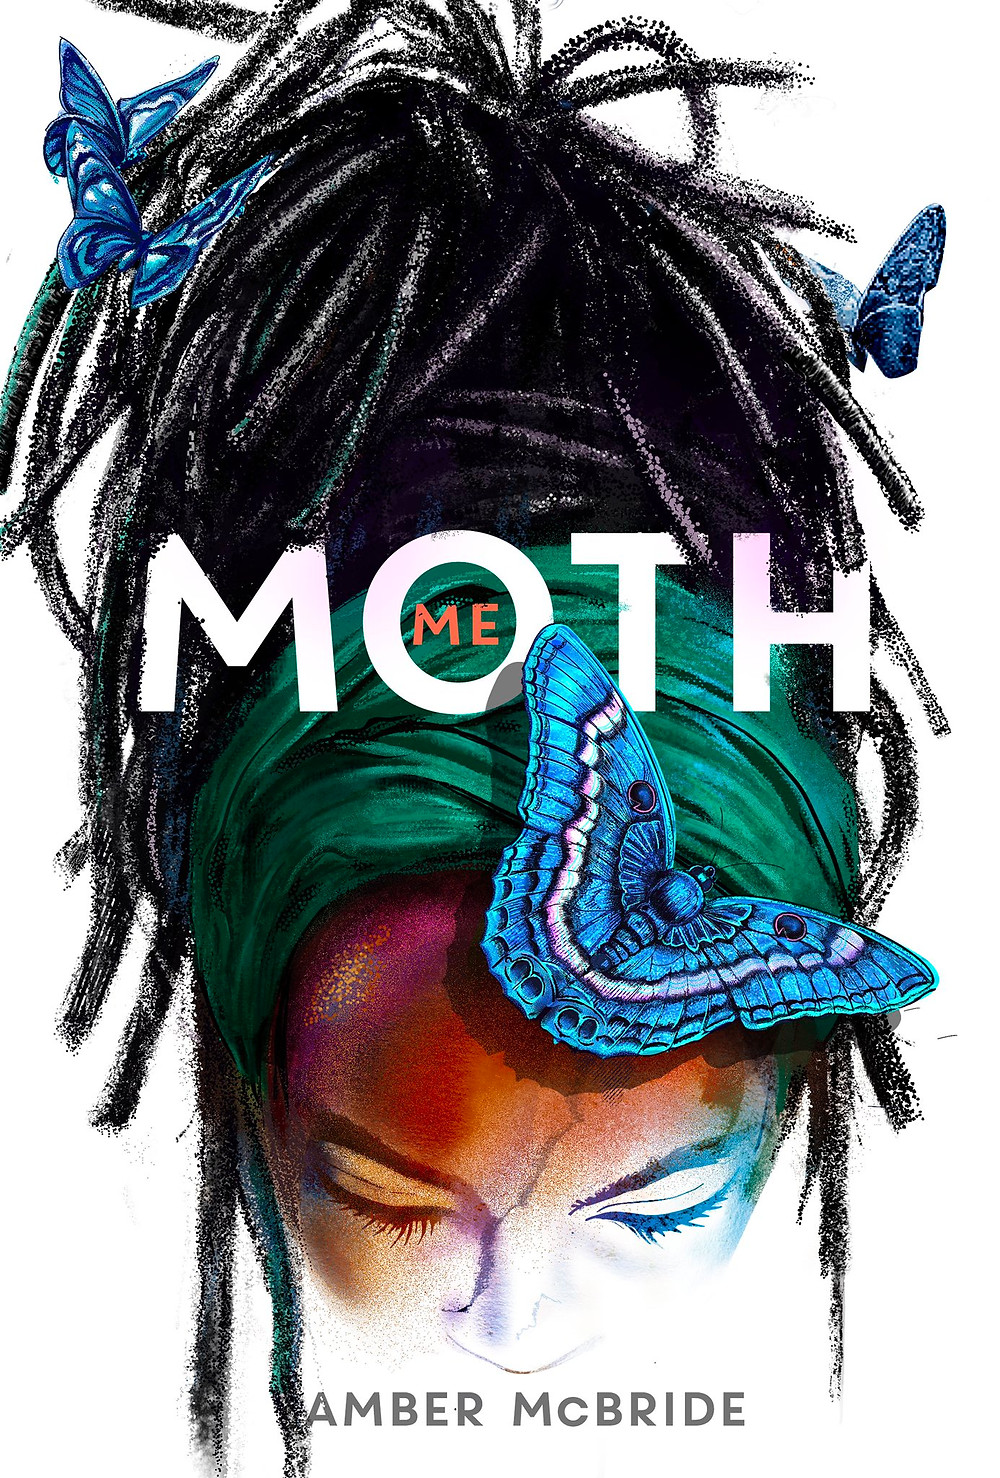 White Background. A Black woman looking down with black dreadlocks wrapped in a green scarf. 4 blue moths around her.